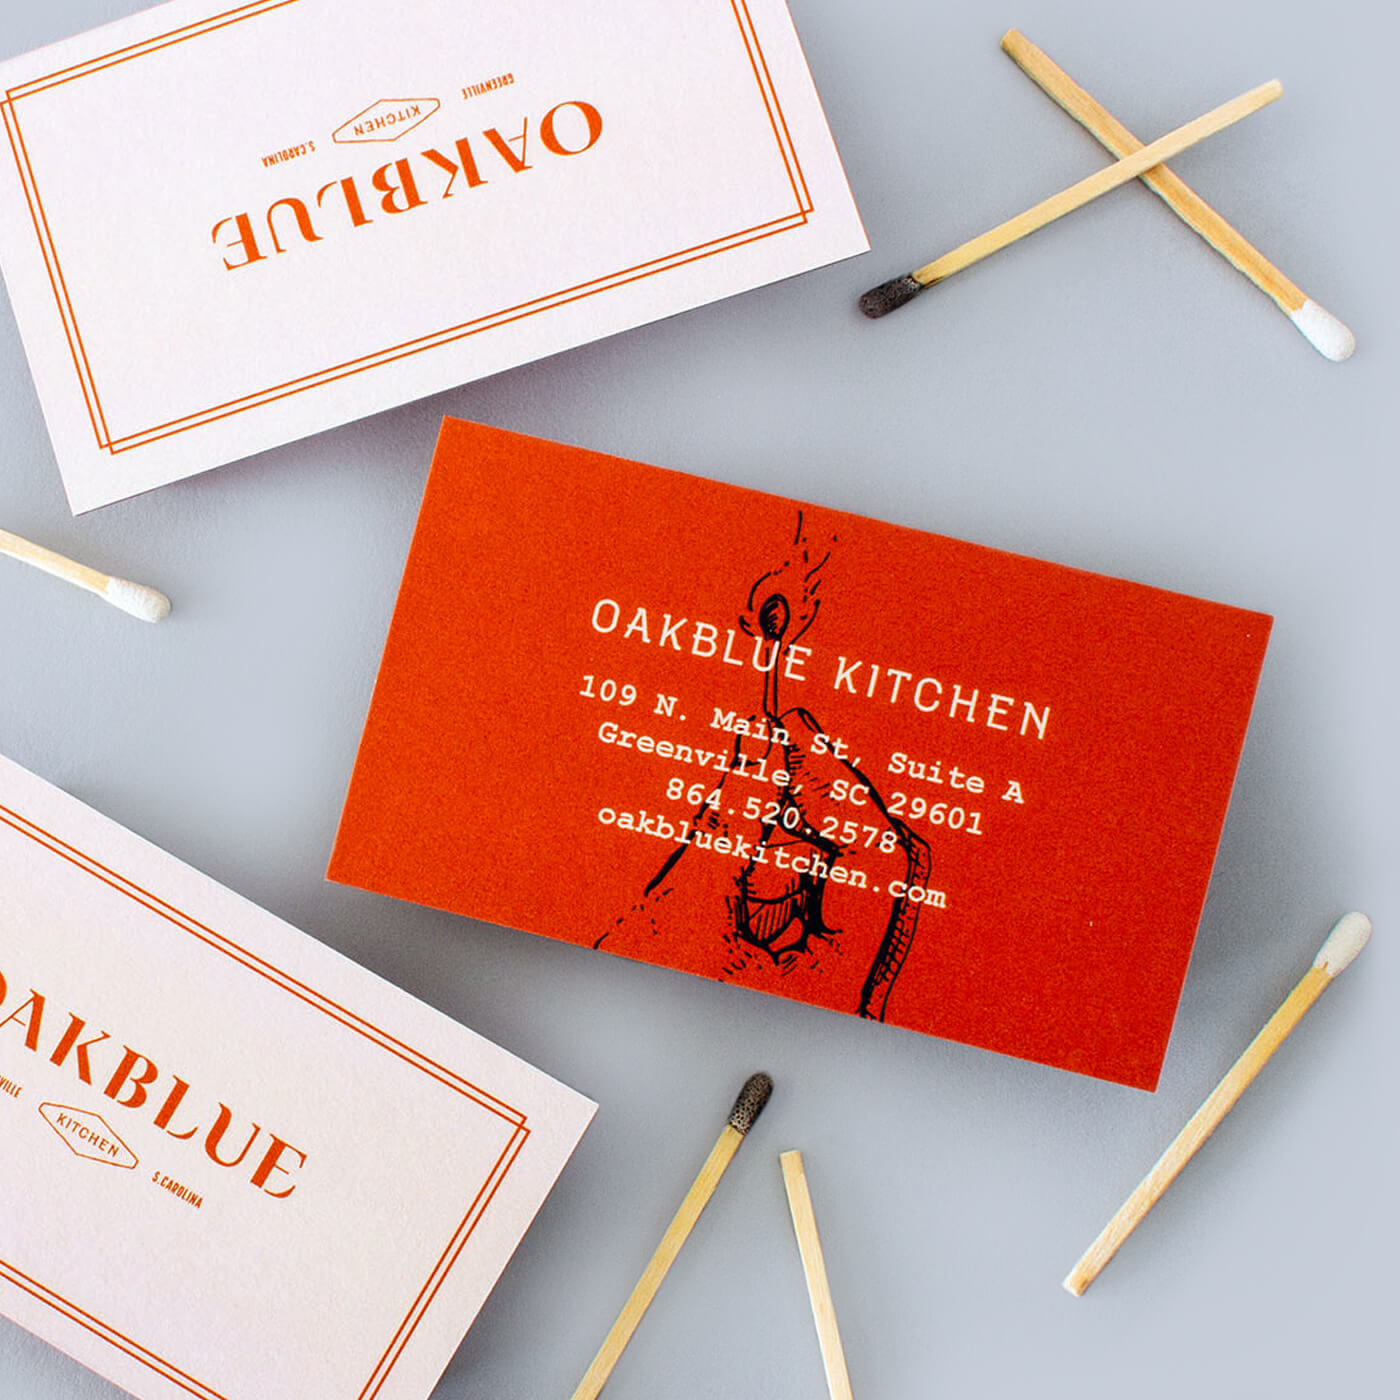 Oakblue Kitchen - Defining the identity of a fusion barbecue restaurant rooted in the South and in its Korean culinary heritage.View Project →